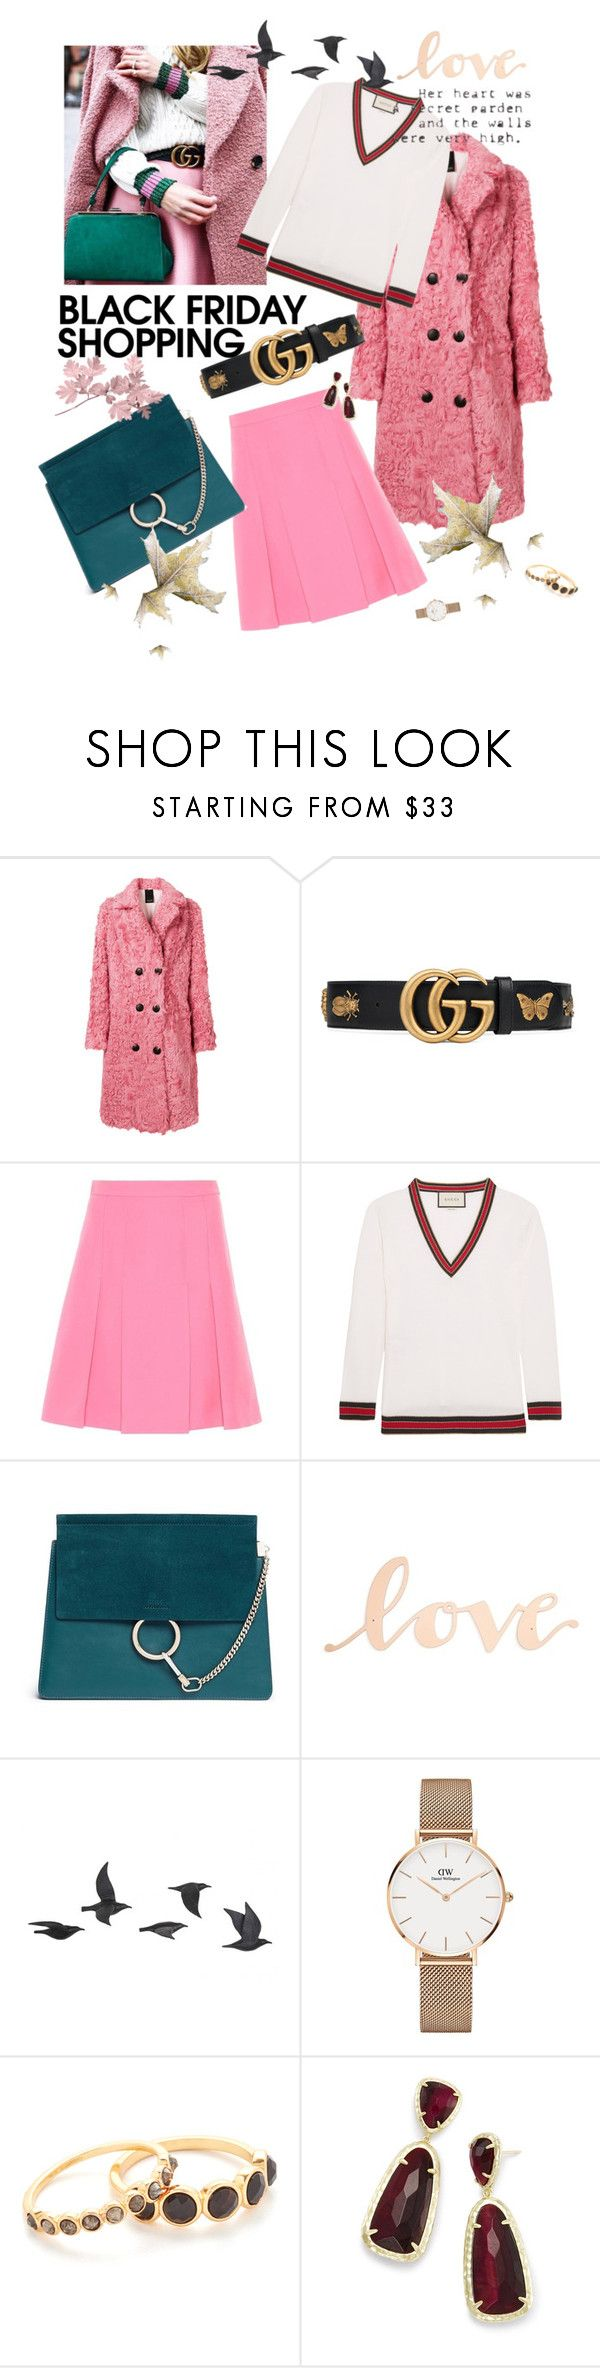 """""""Black Friday"""" by ladylly ❤ liked on Polyvore featuring Numerootto, Gucci, Chloé, Primitives By Kathy, Jayson Home, Daniel Wellington, Gorjana, Kendra Scott, sale and danielwellington"""